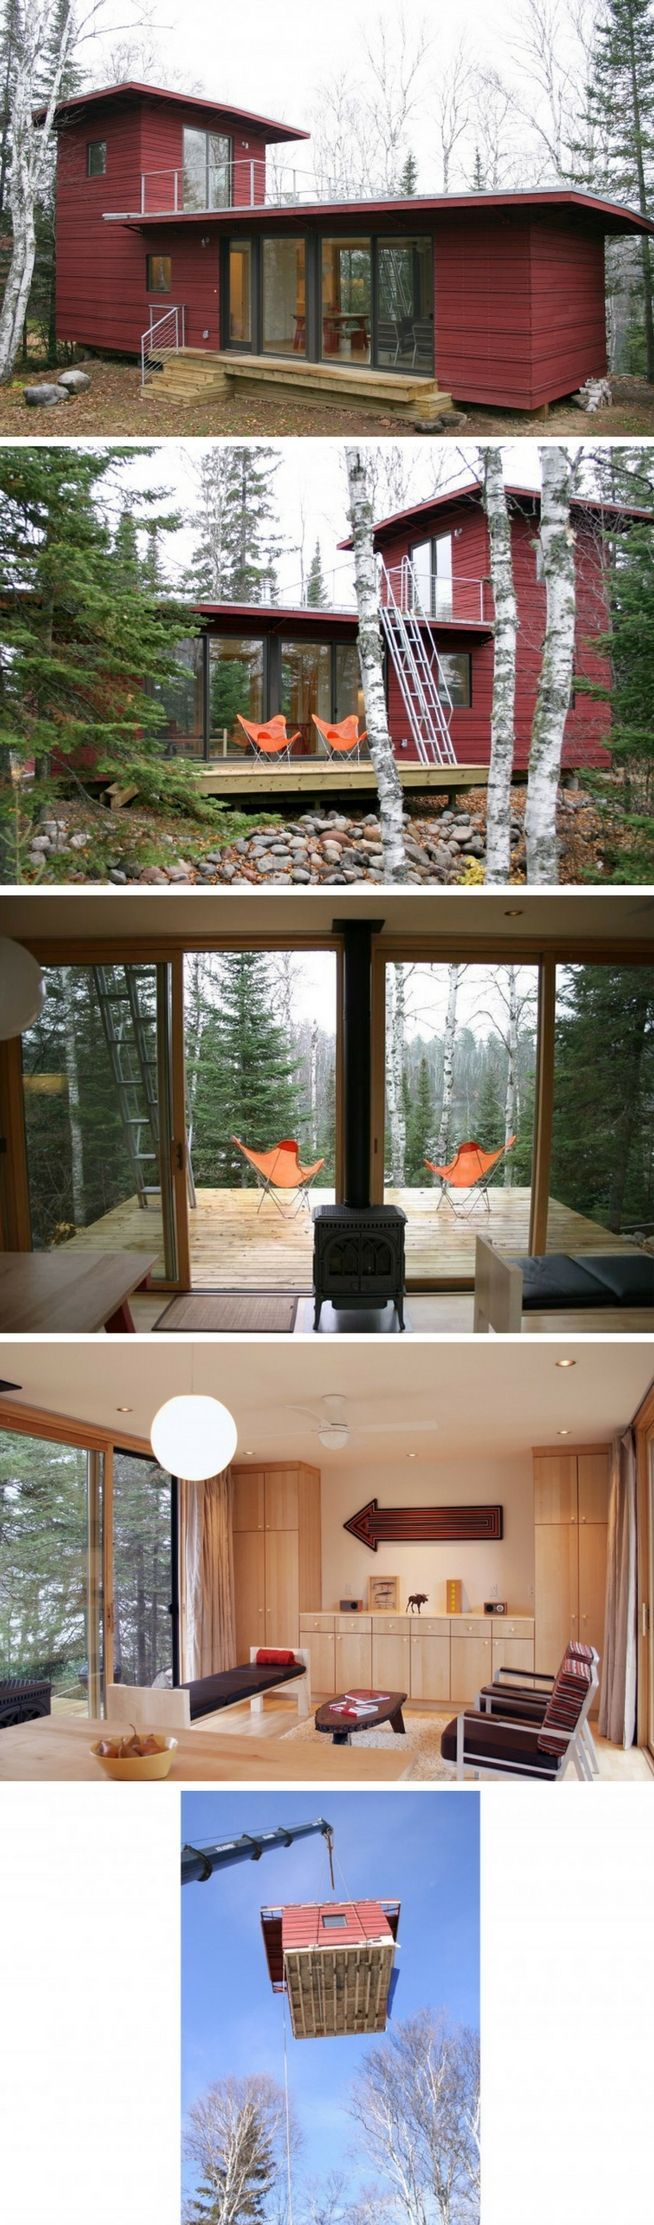 MCGLASSON WEEHOUSE SHIPPING CONTAINER